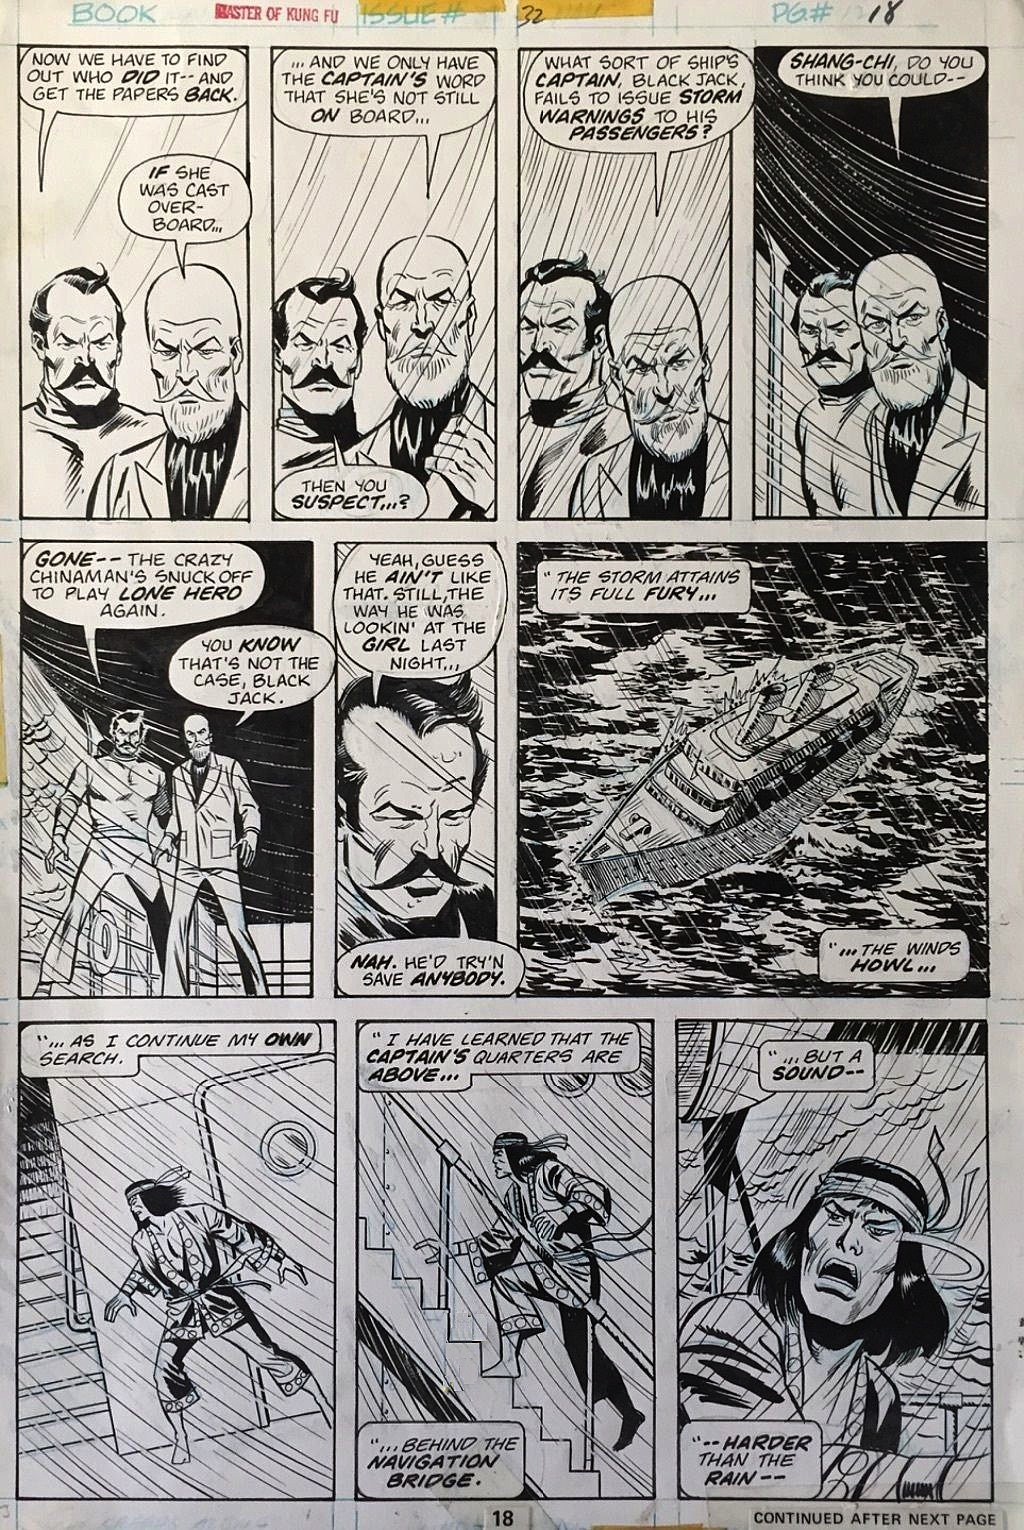 An original page from Master Of Kung Fu #32